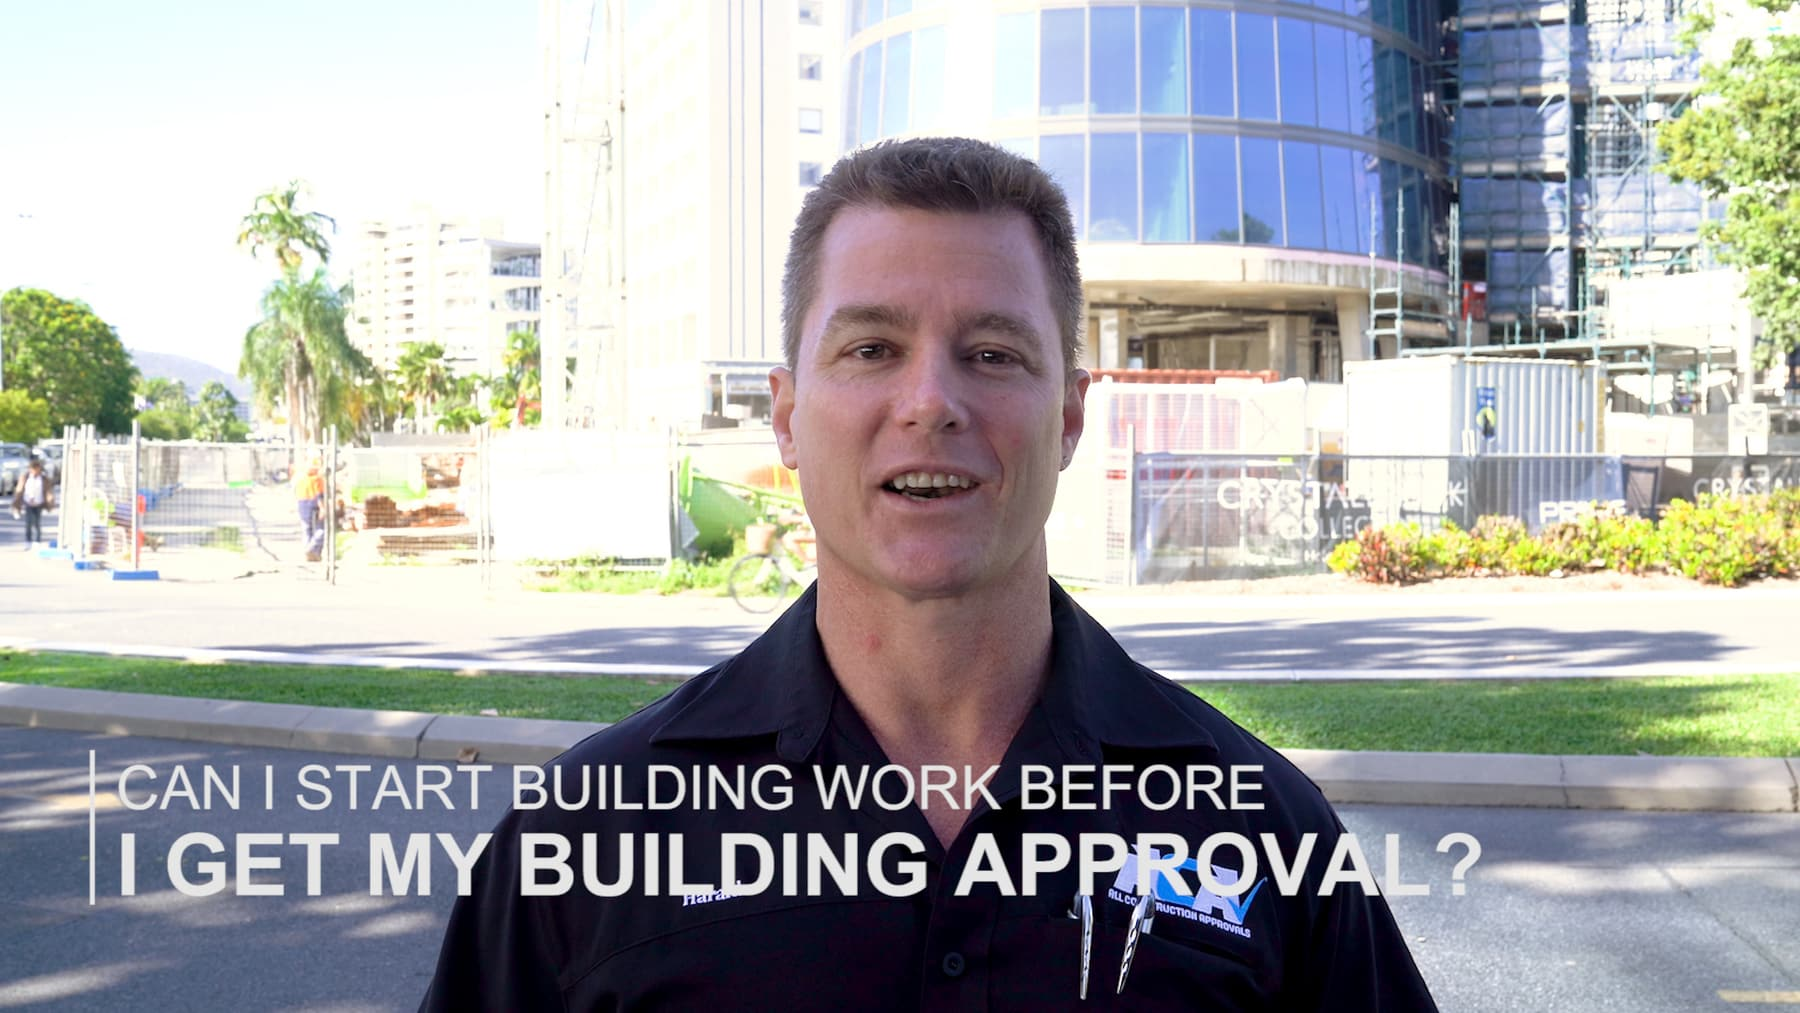 Can I start building work before I get my building approval?